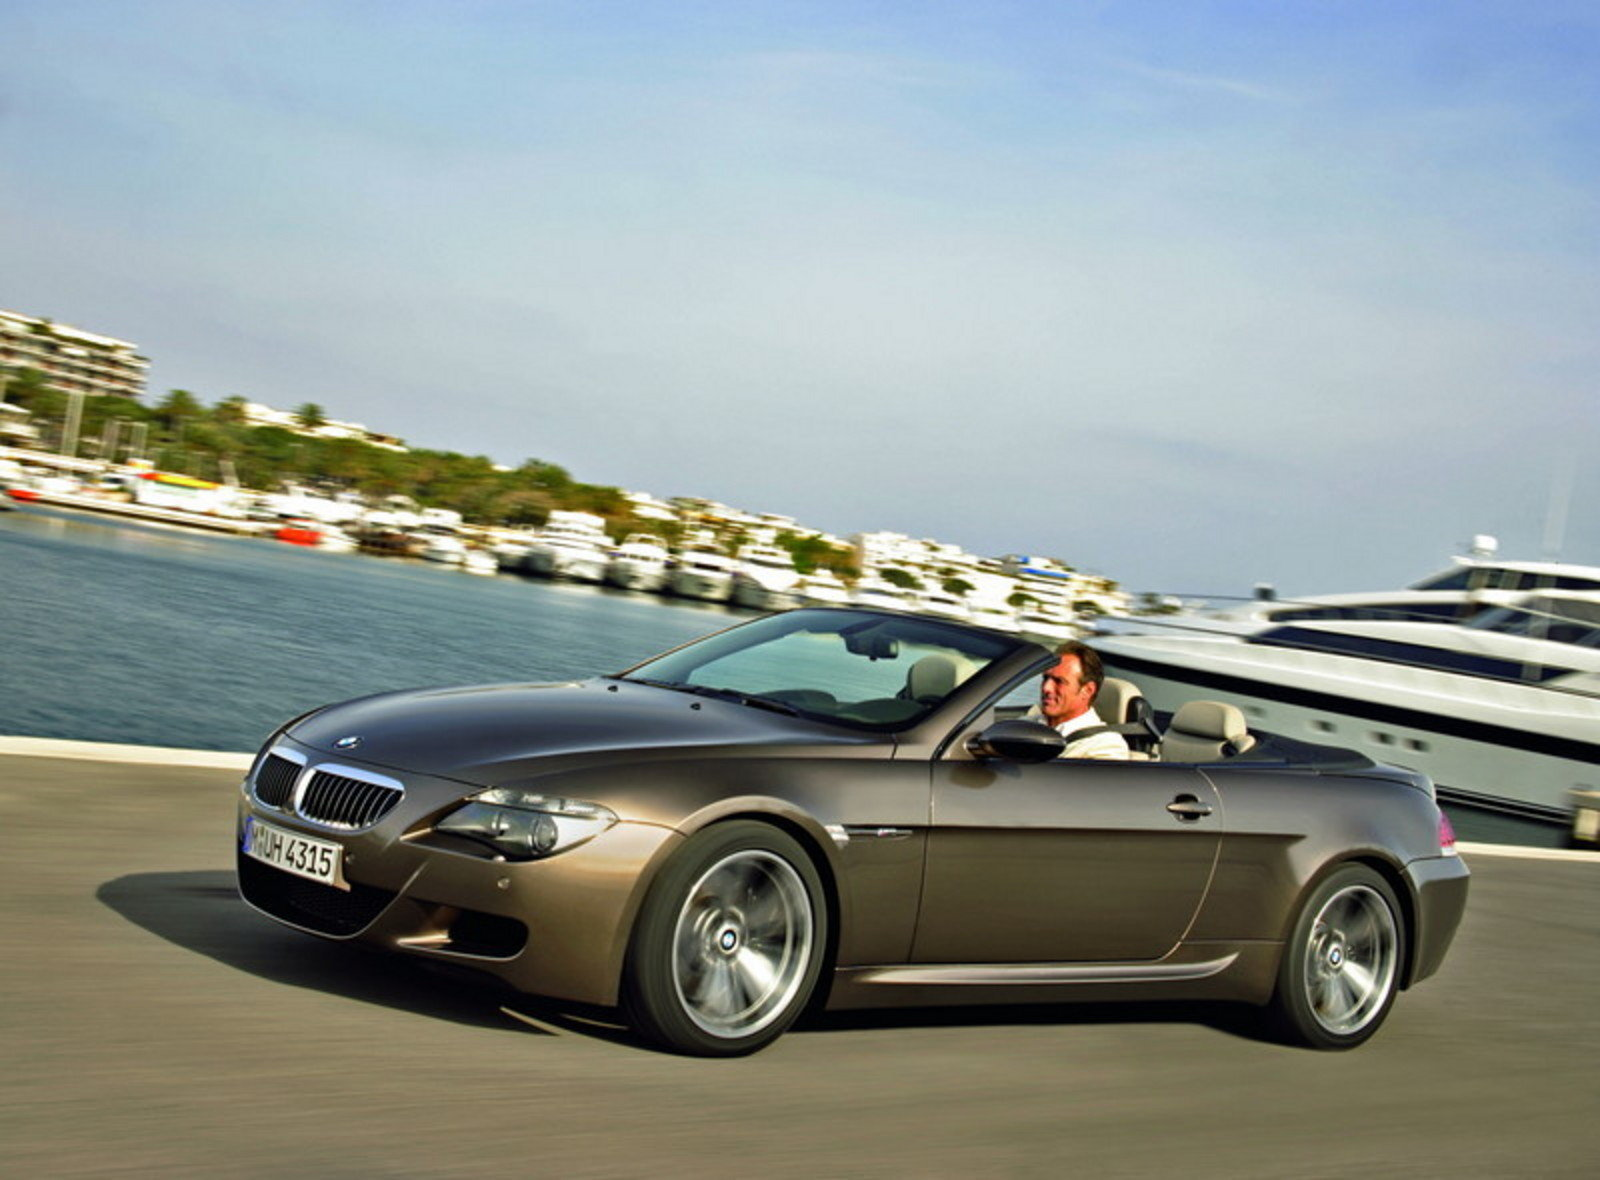 2007 bmw m6 convertible picture 82397 car review top speed. Black Bedroom Furniture Sets. Home Design Ideas